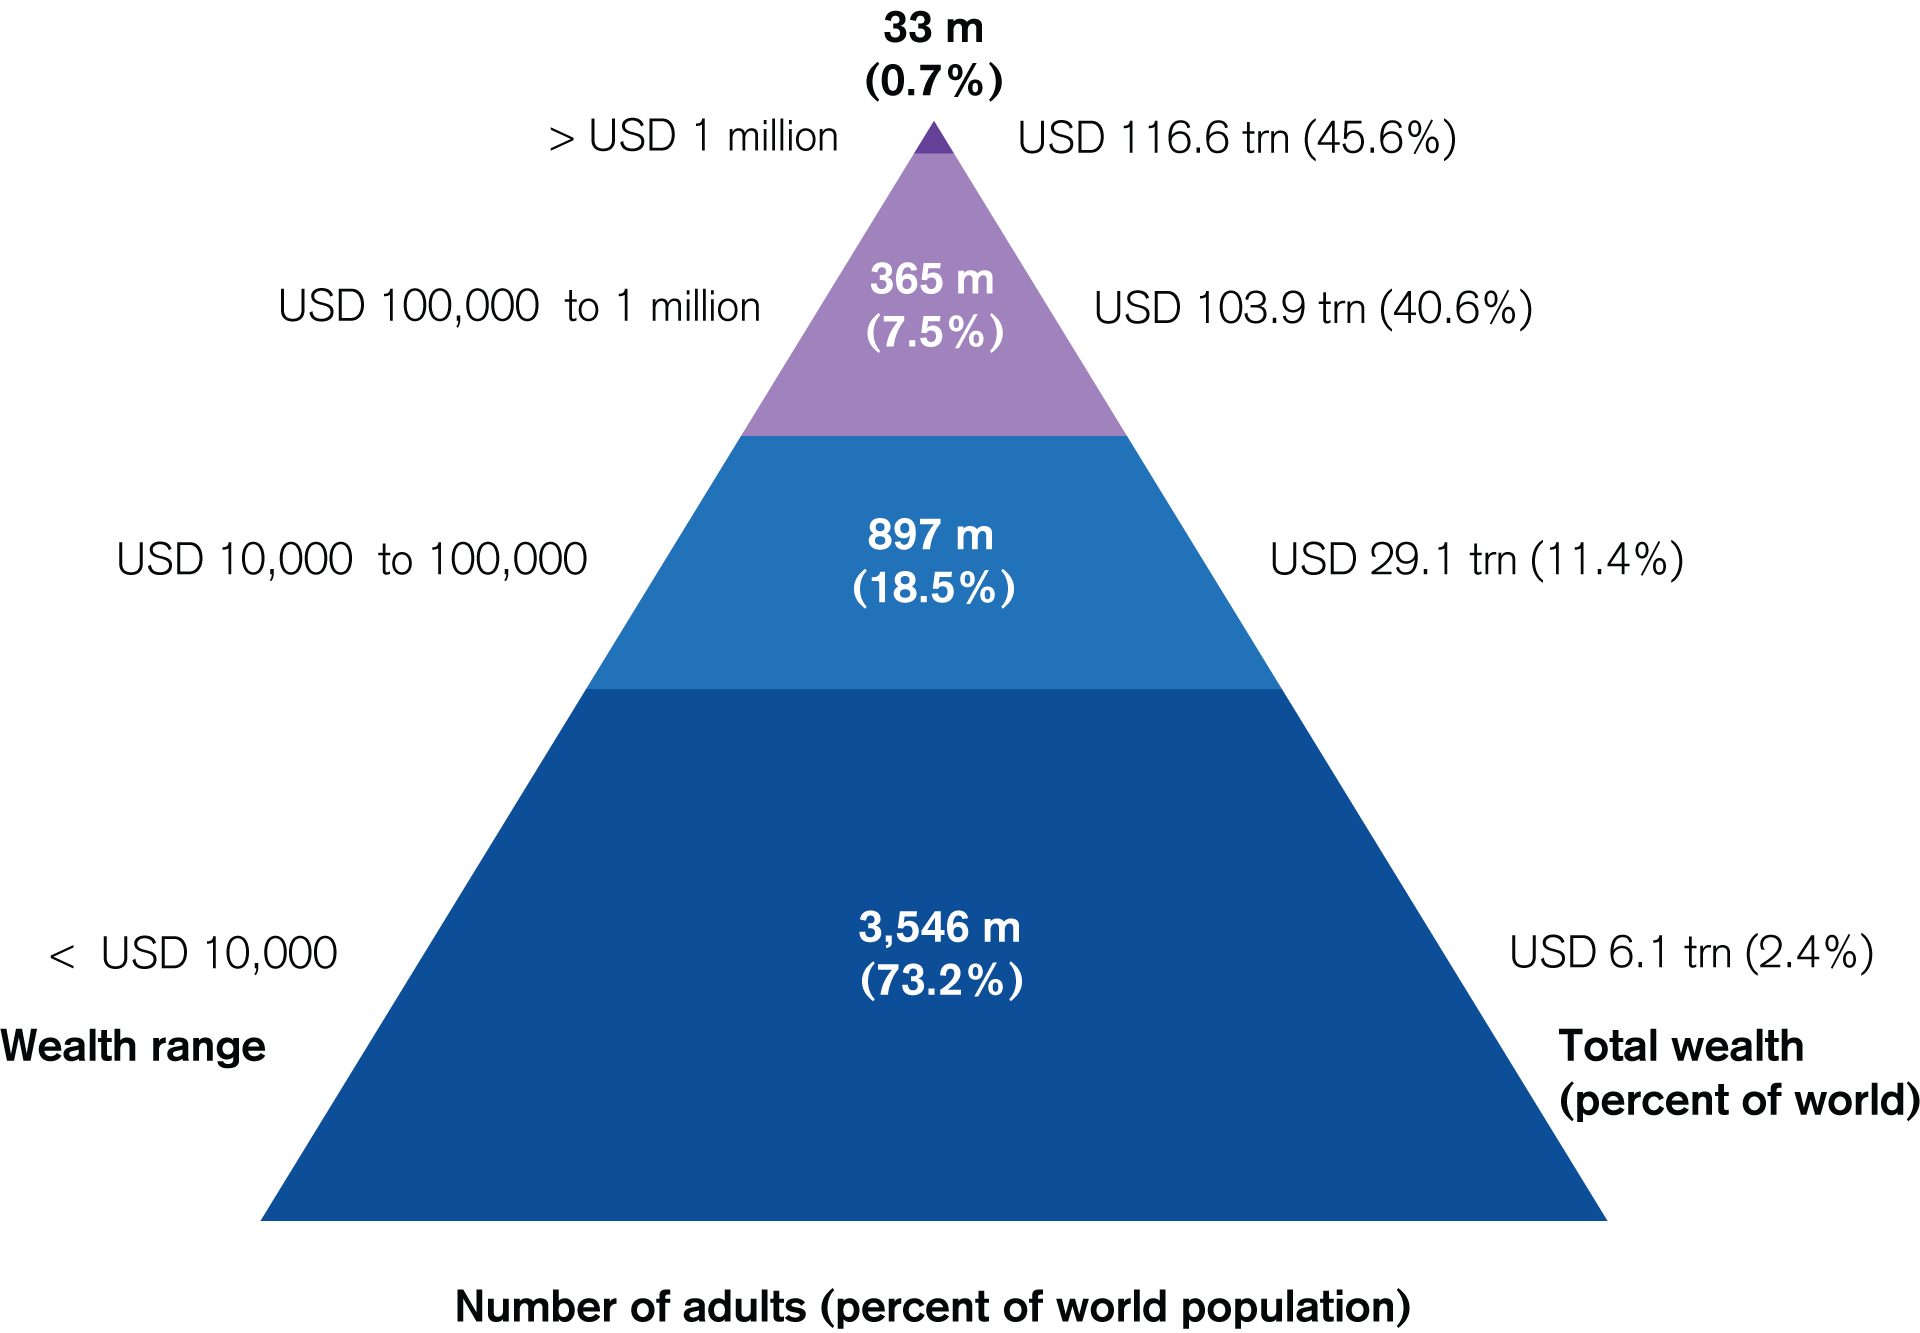 The Global Wealth Pyramid